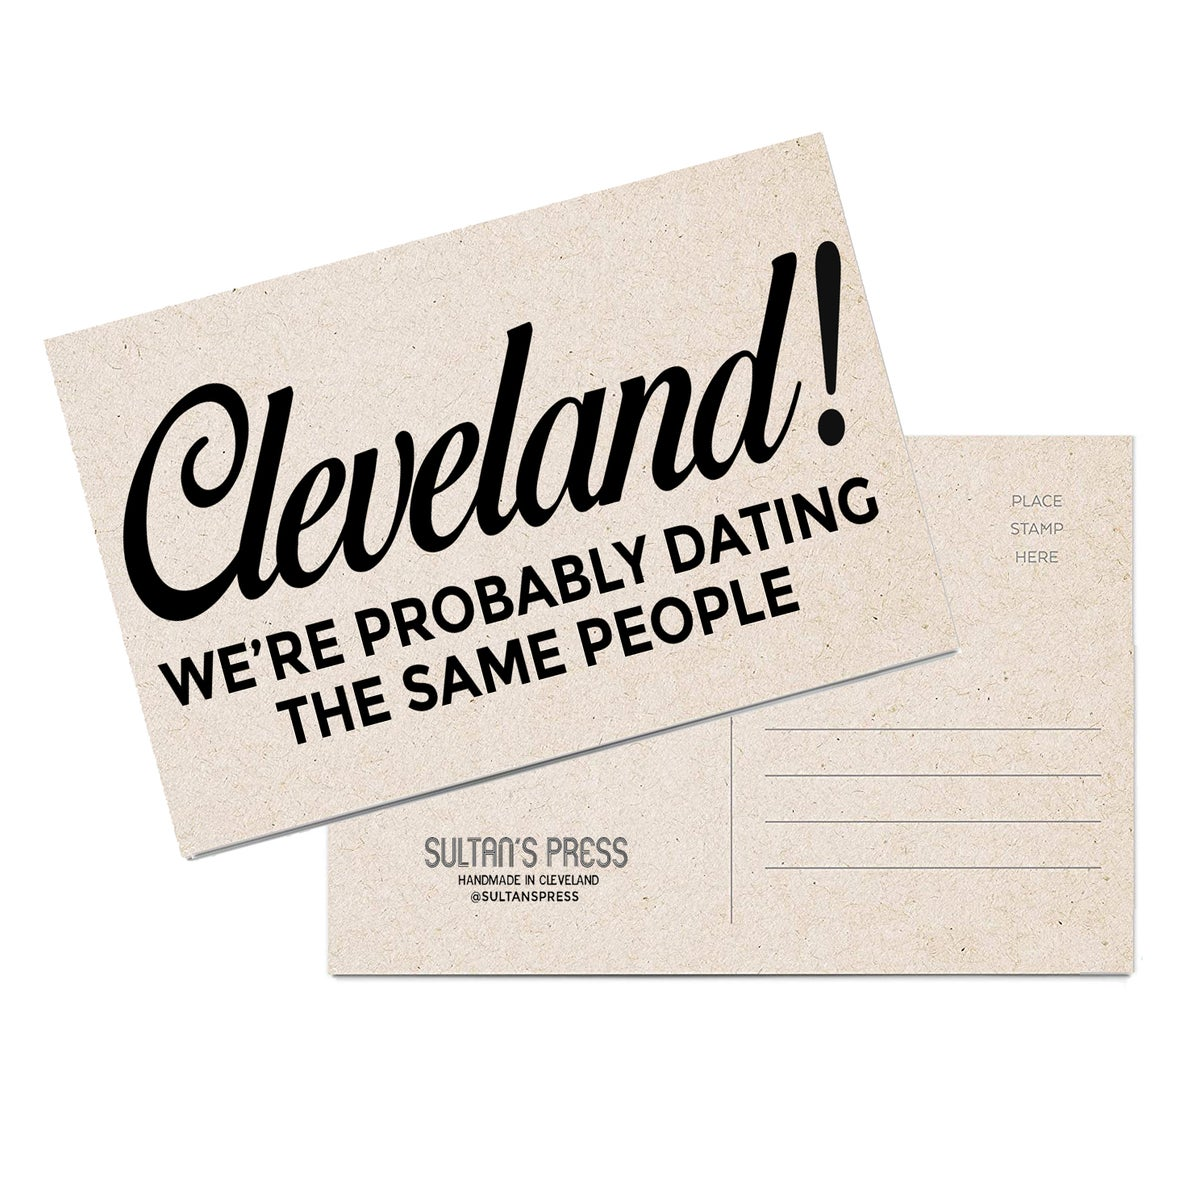 Image of Post Cards